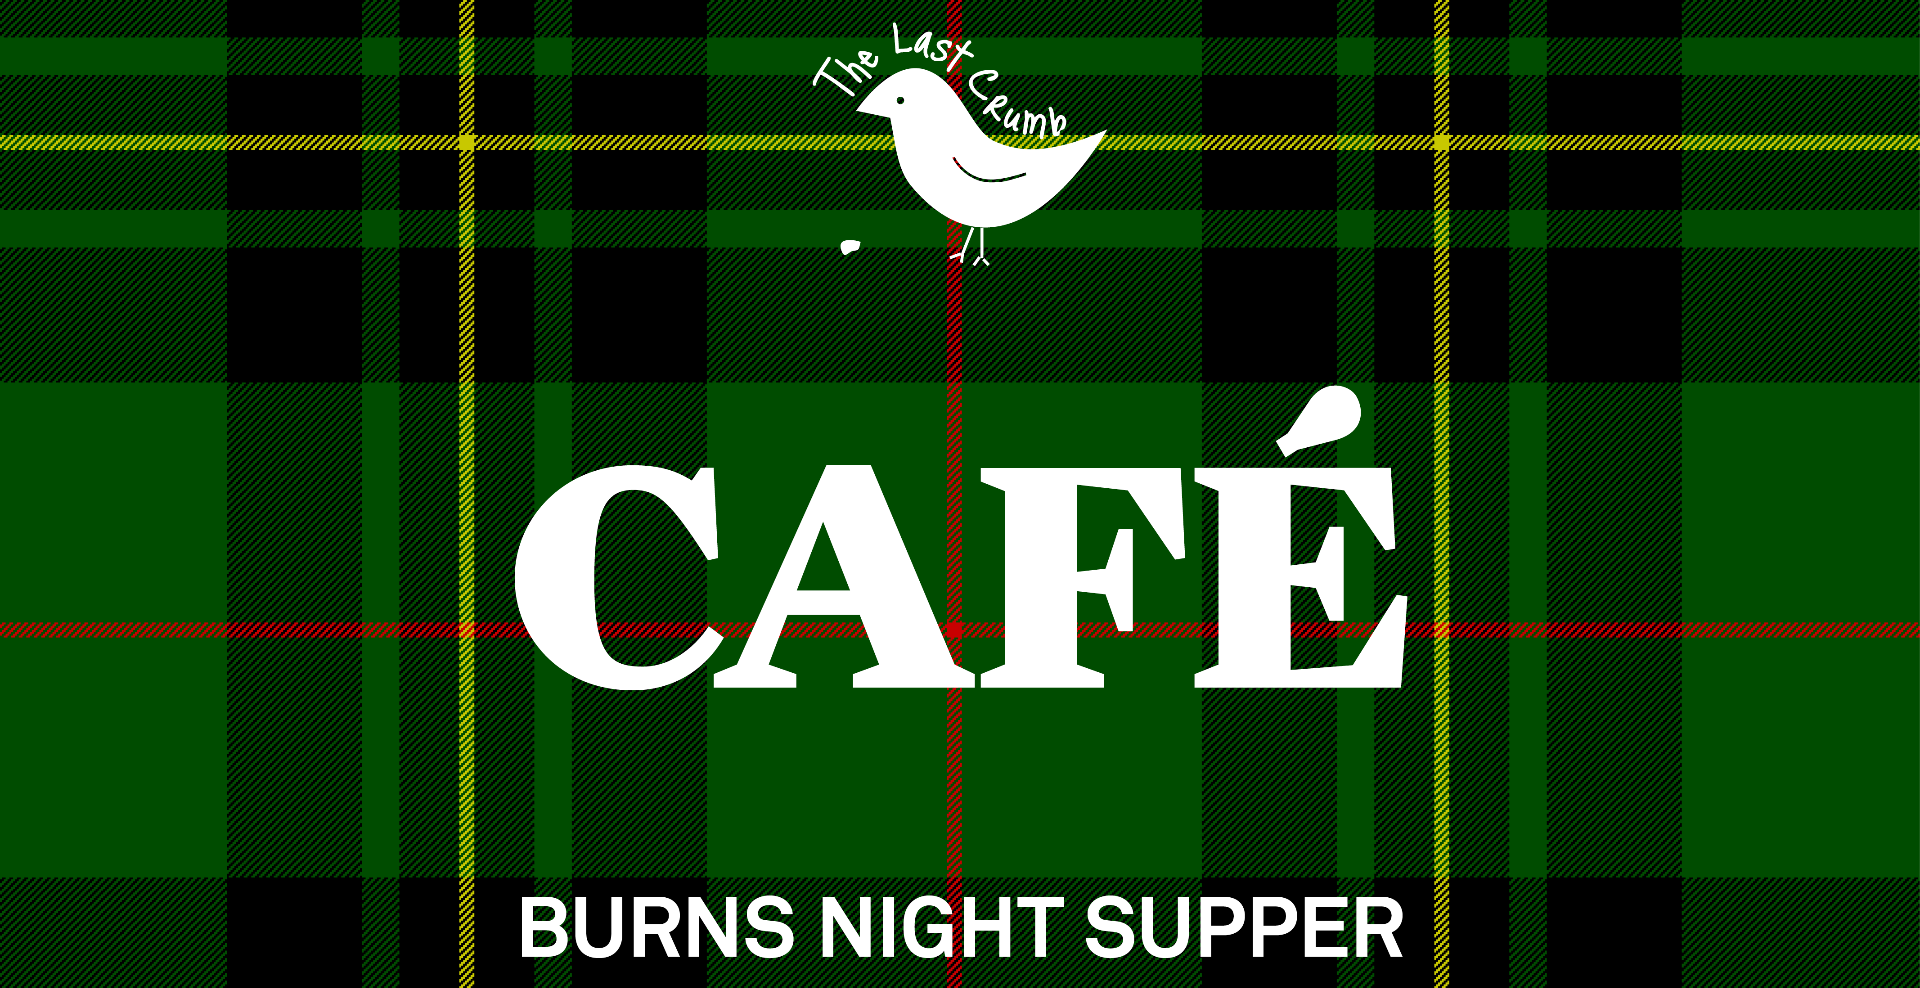 The Last Crumb Burns Night Supper